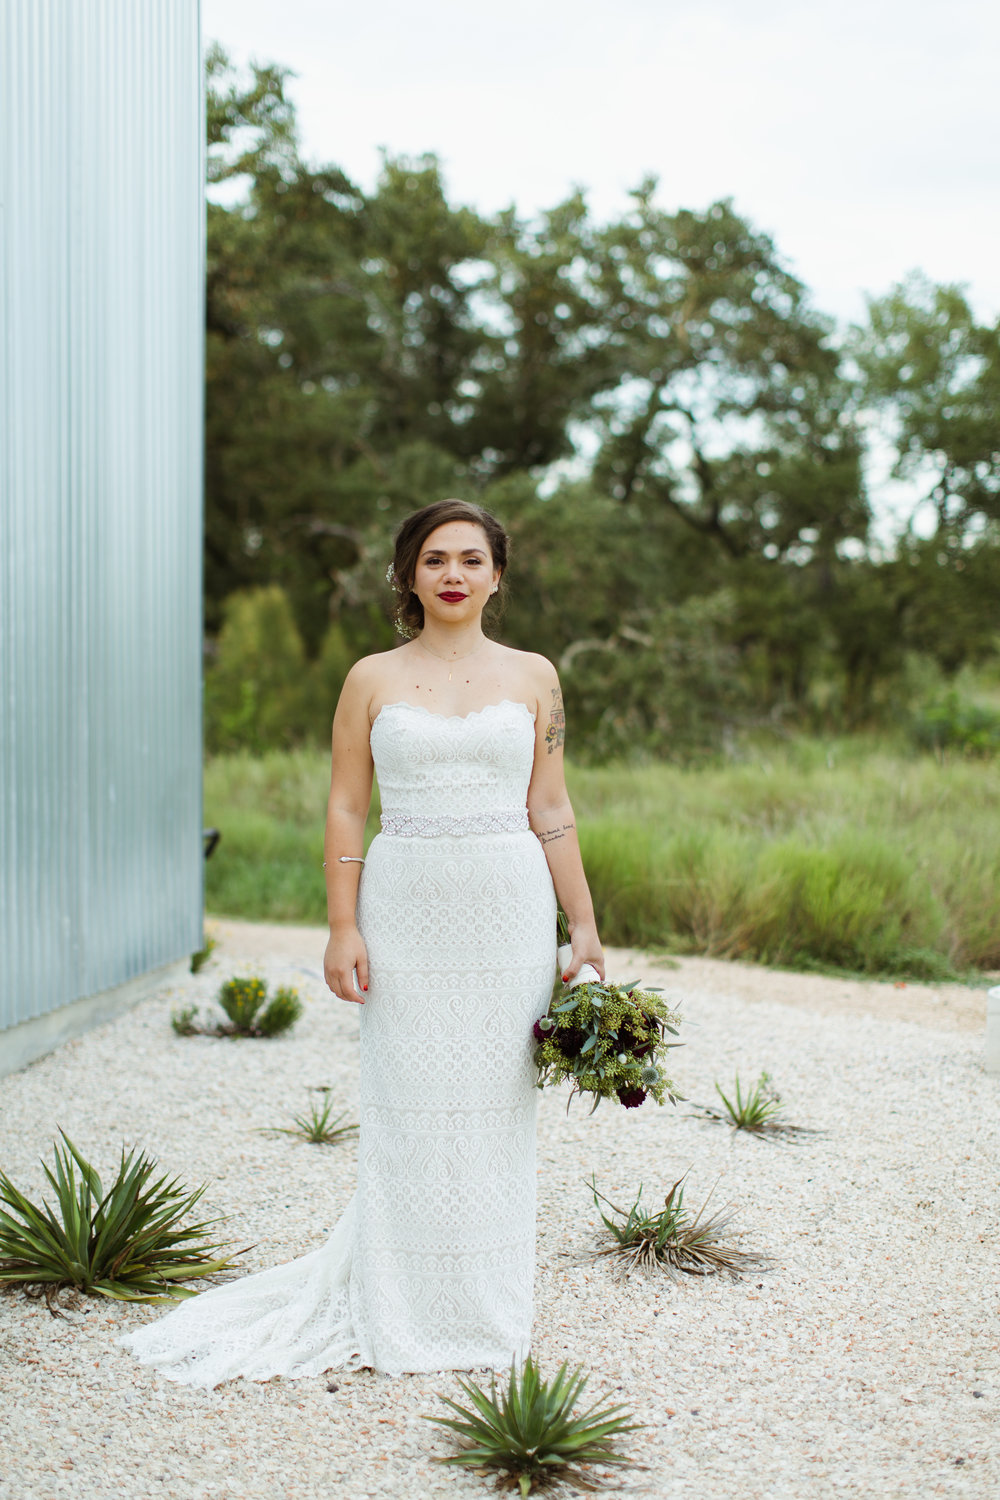 Paige-Newton-Destination-Wedding-Photography-Prospect-House-Bridal-Shoot.jpg